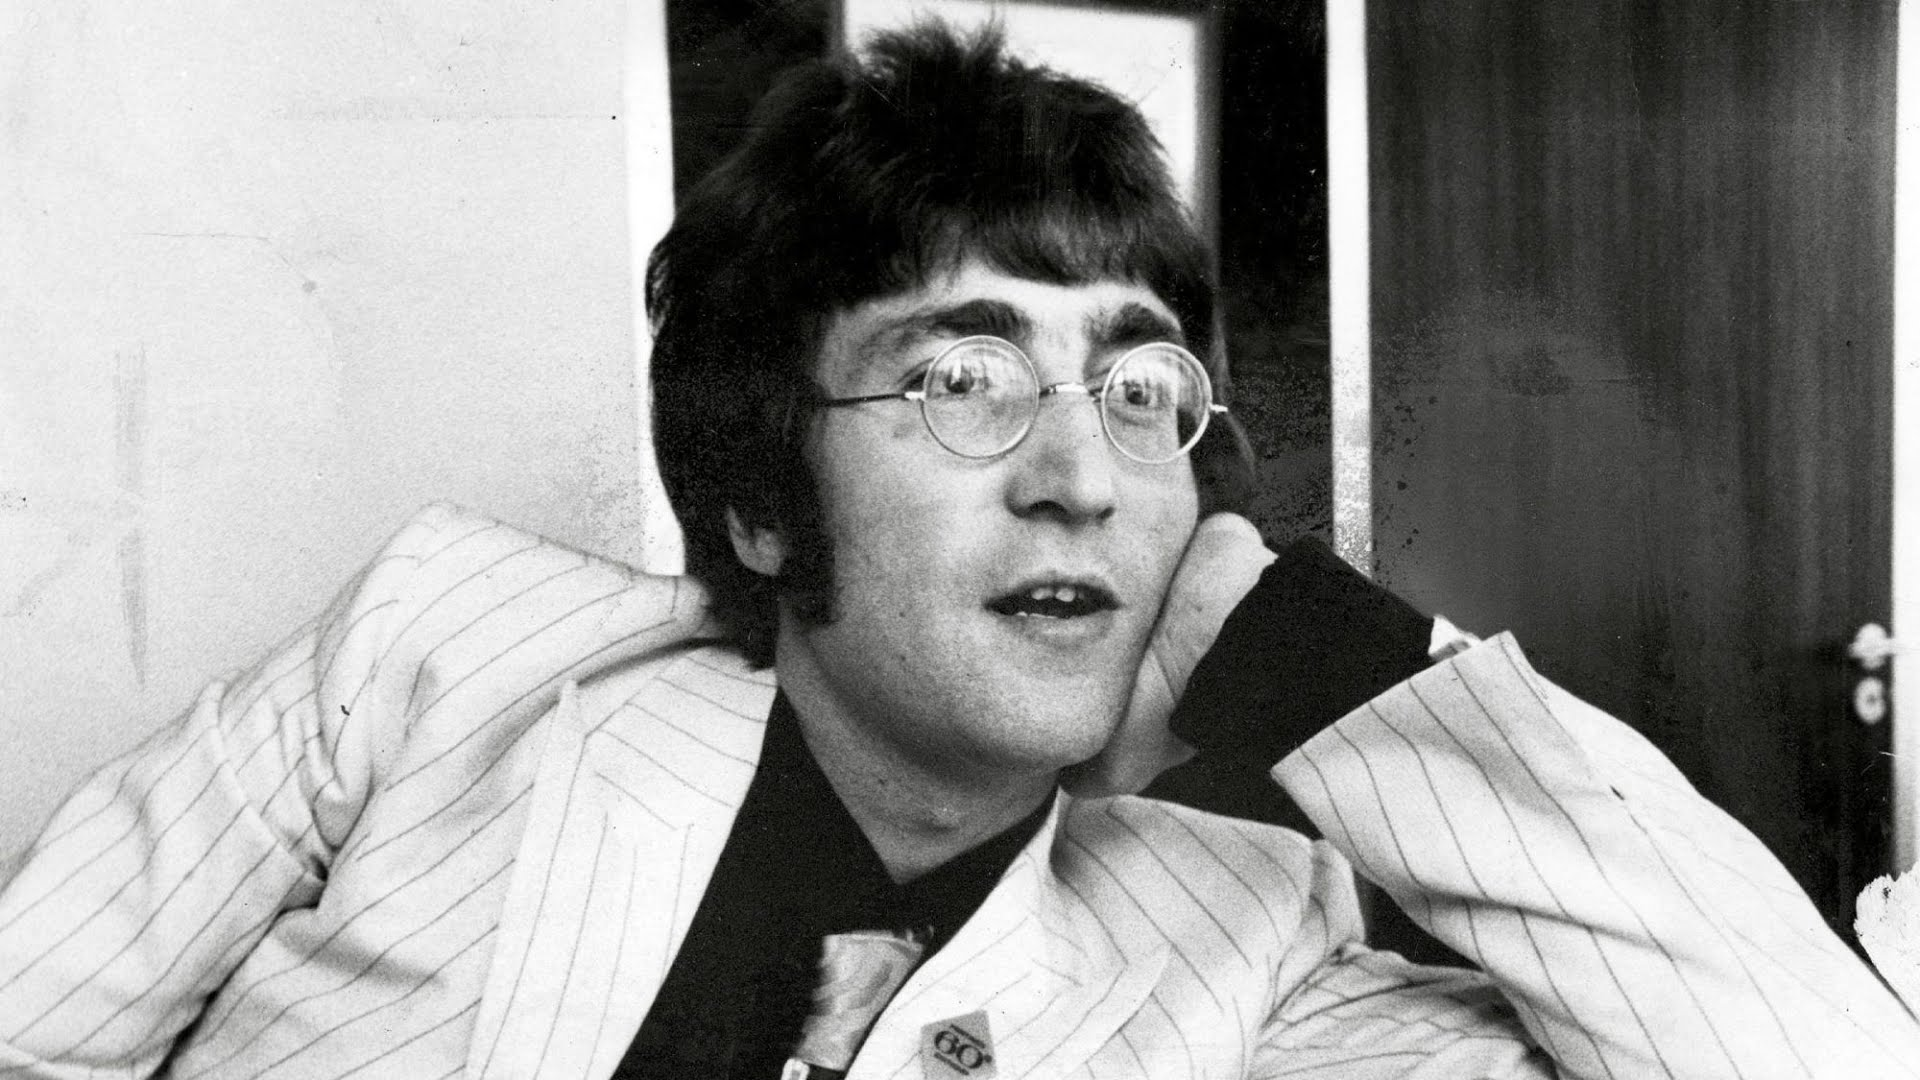 John Lennon Honored by His Sons, Paul McCartney and Ringo Starr on 40th Anniversary of His Death